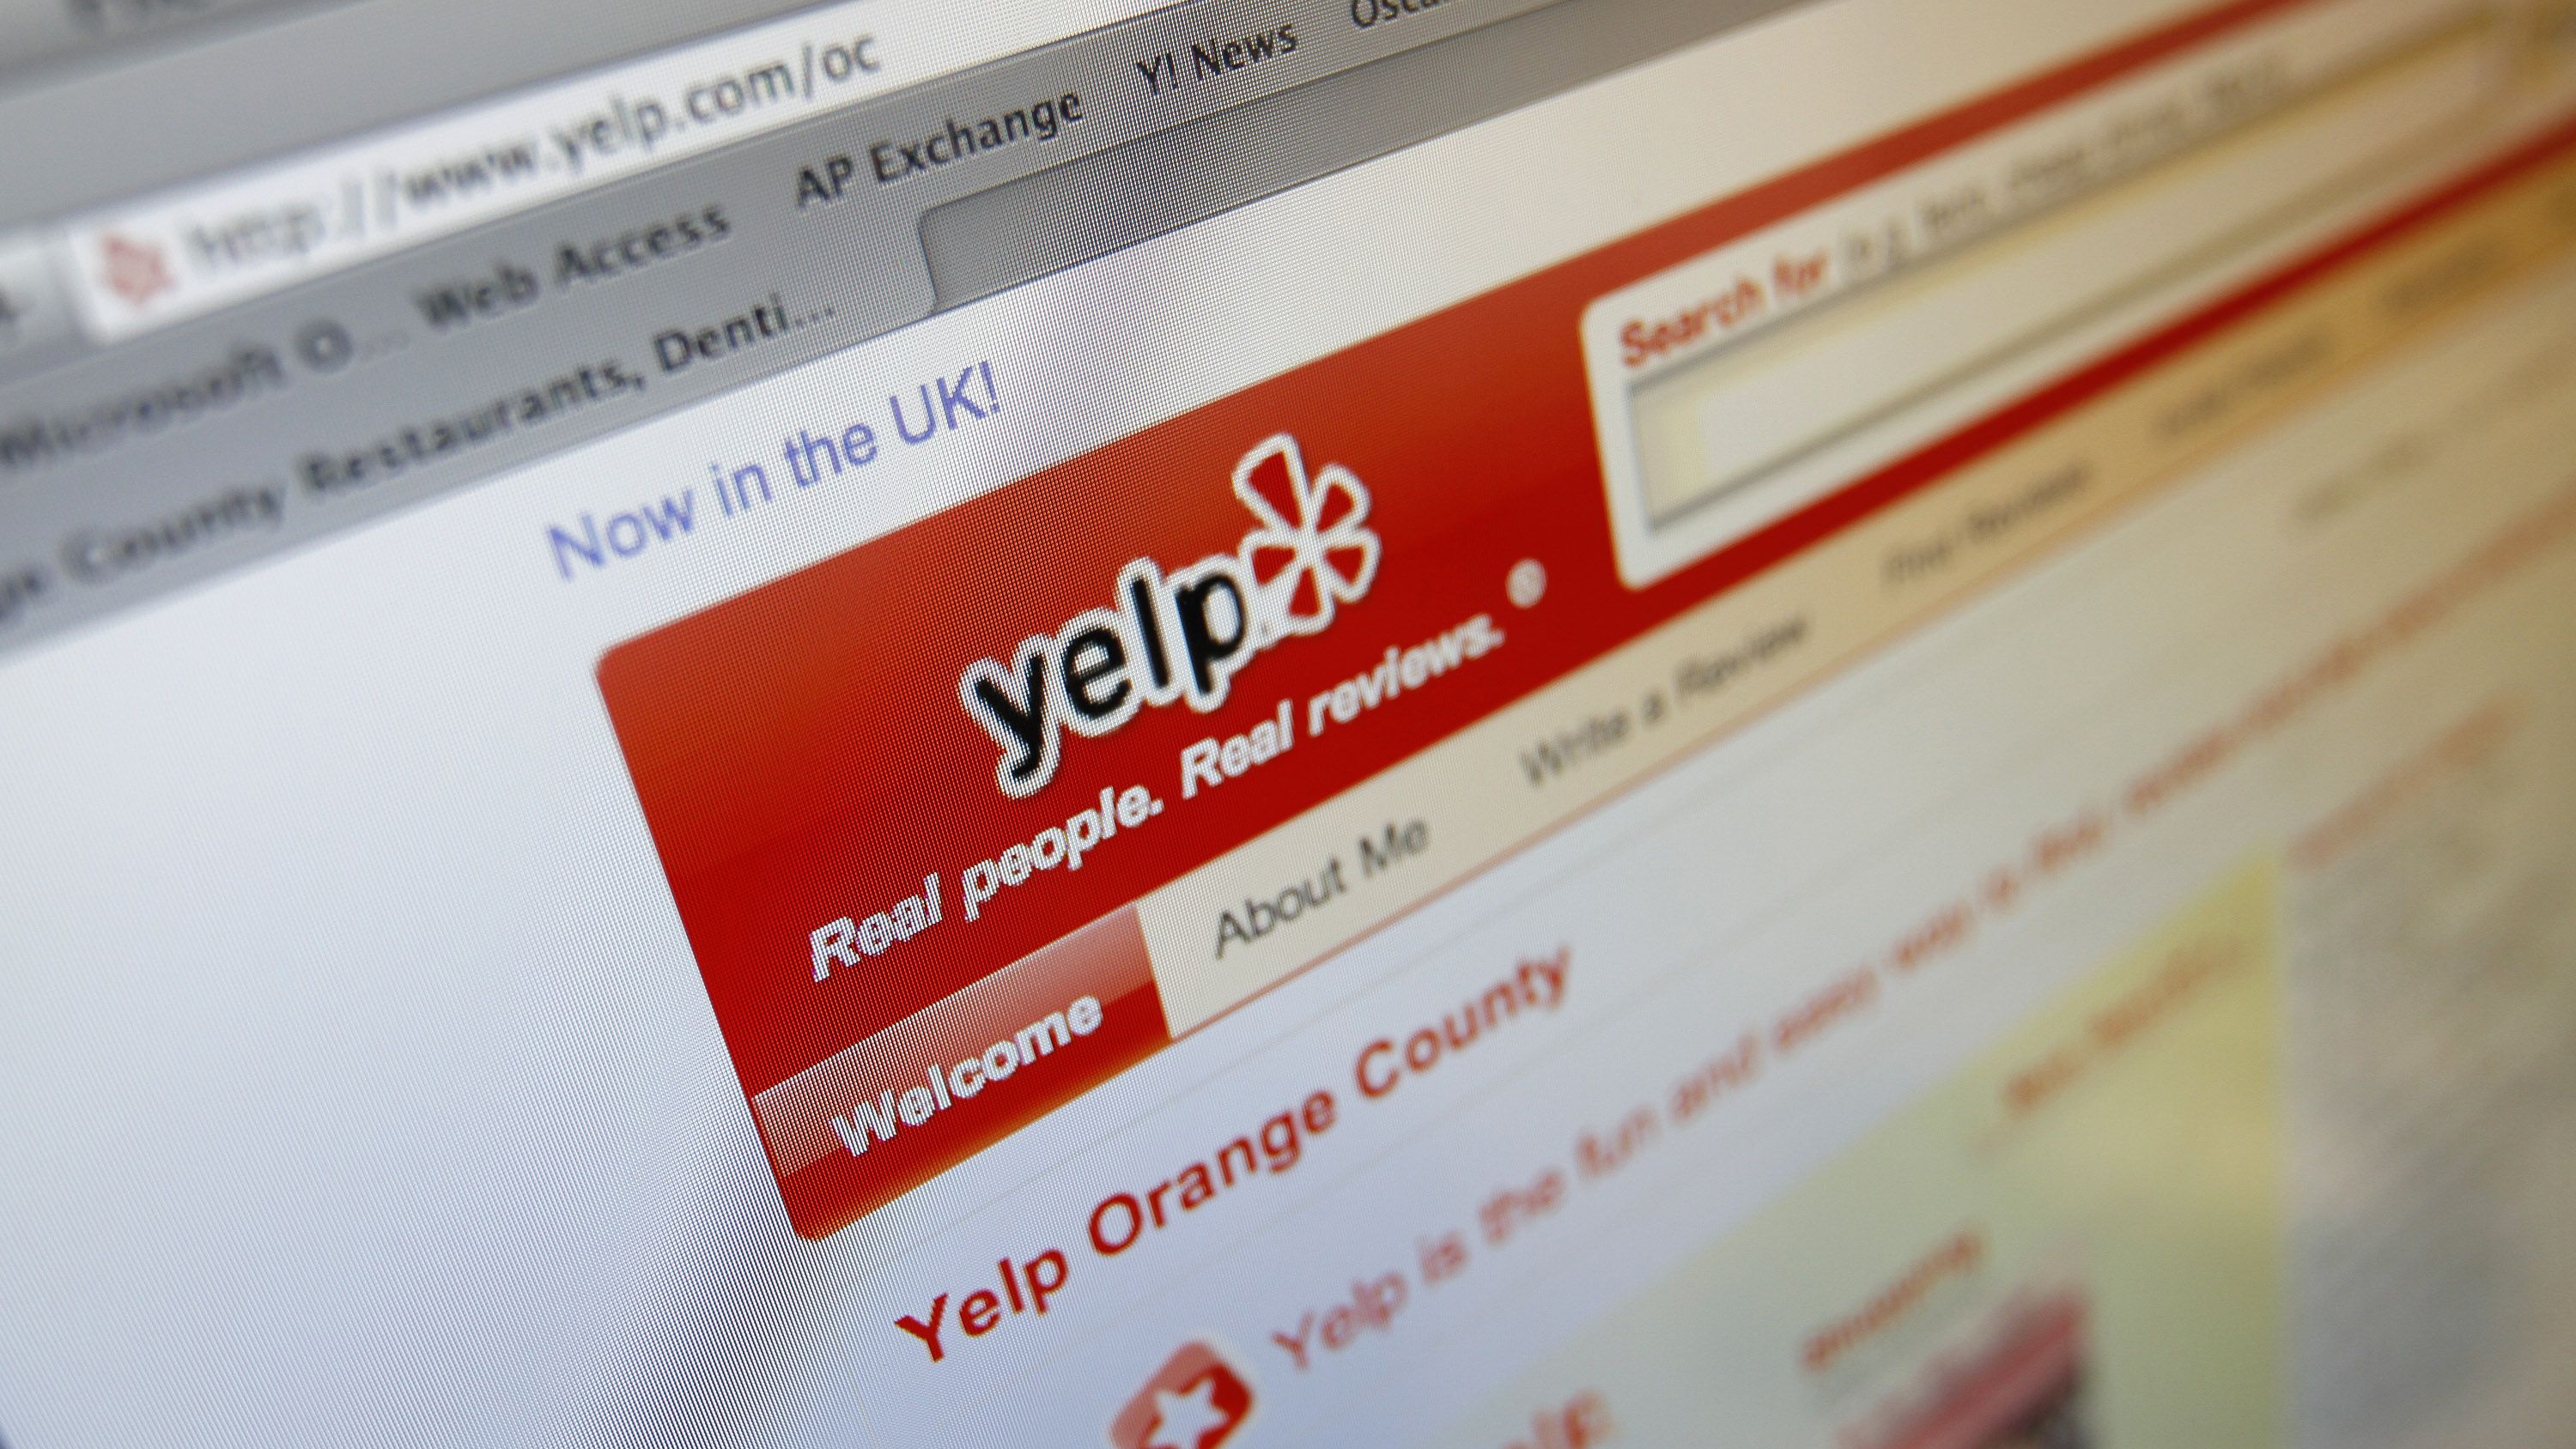 This image shows a Yelp web site on a computer screen in Los Angeles Thursday March 18, 2010. Yelp, one of the most popular, fast-growing online review sites, has been hit by several lawsuits from small businesses claiming they've been pressured to advertise so that Yelp will squash negative reviews users have posted about them. Yelp denies the claims, but exactly what happened may never be known. (AP Photo/Richard Vogel)